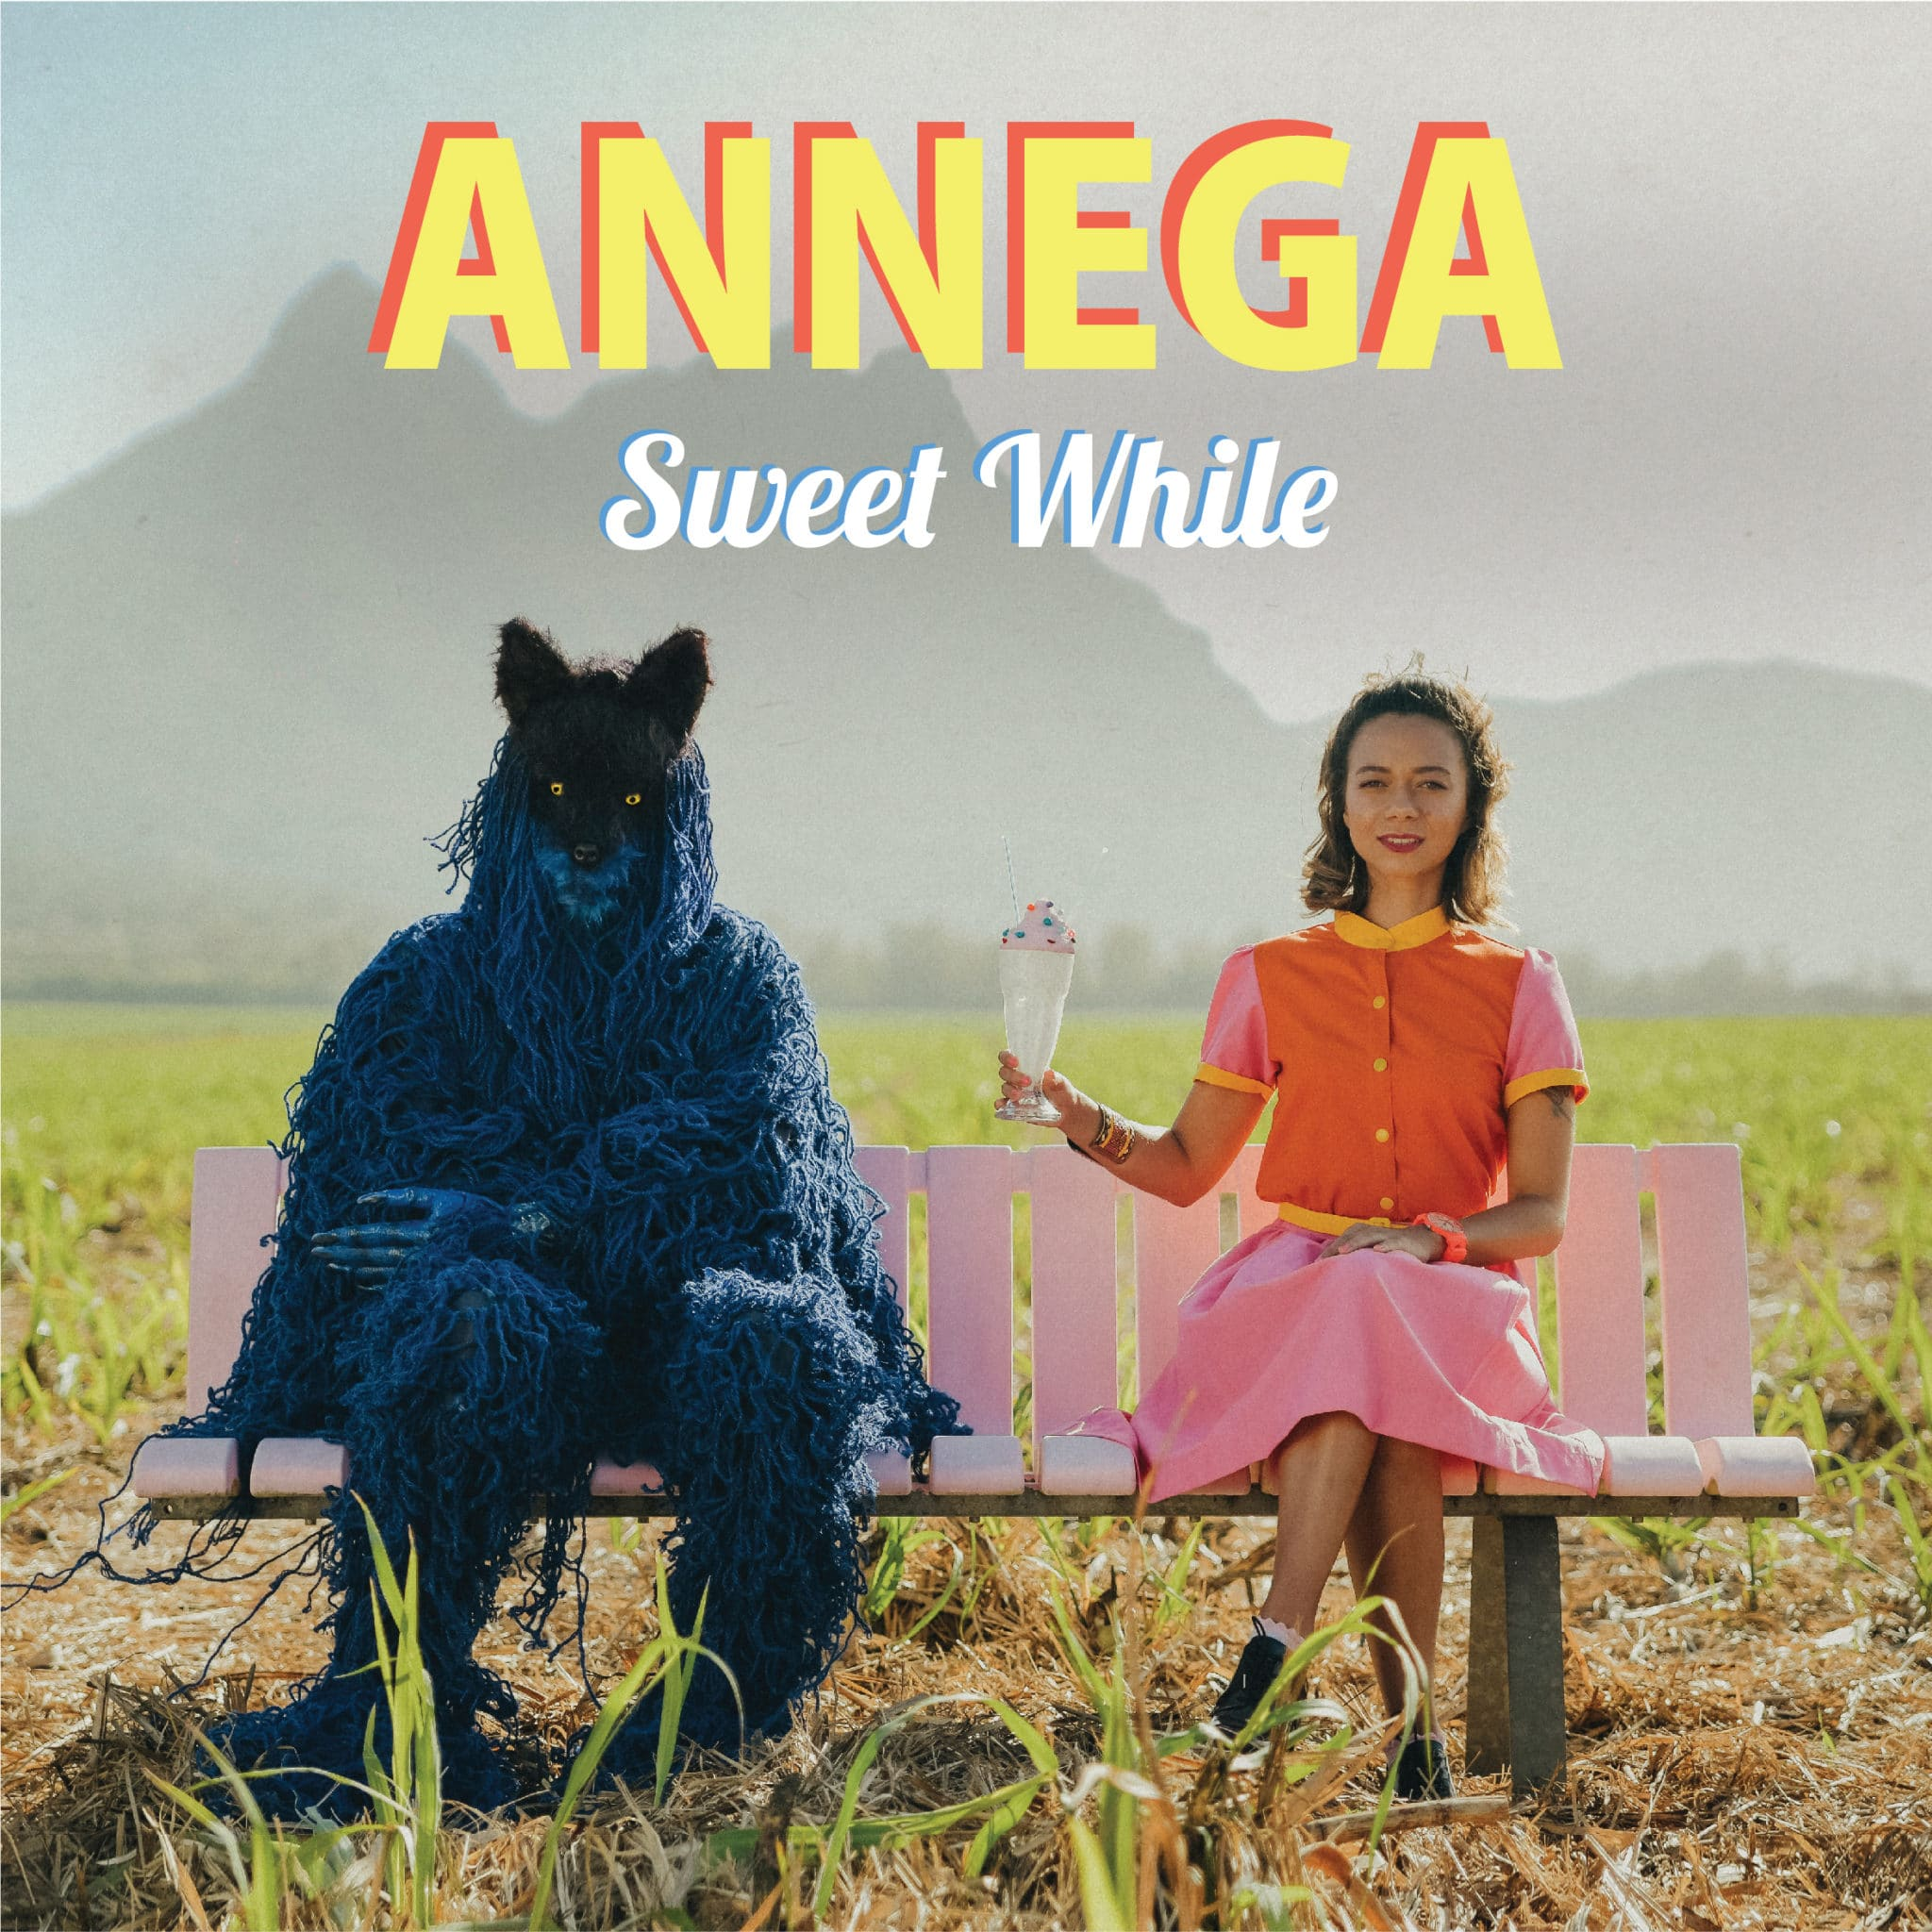 20200204_ANNEGA_Sweet While_Cover